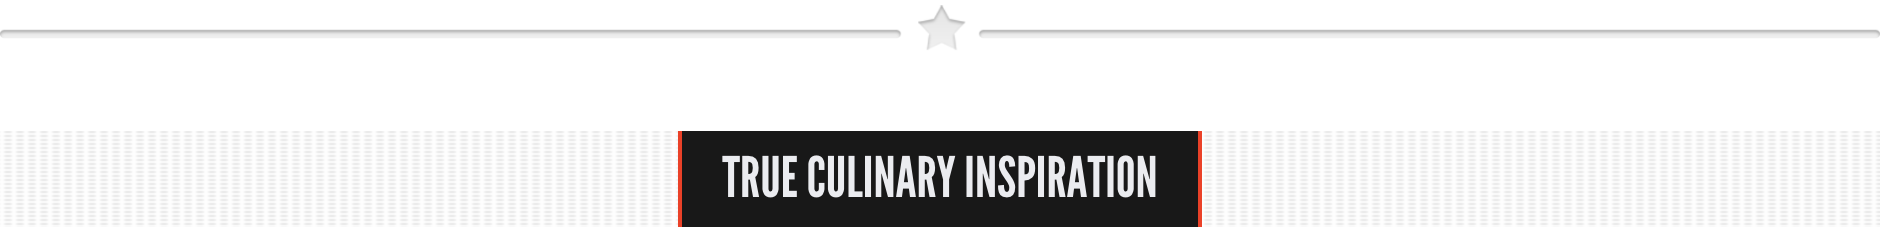 A subheading quote: true culinary inspiration.